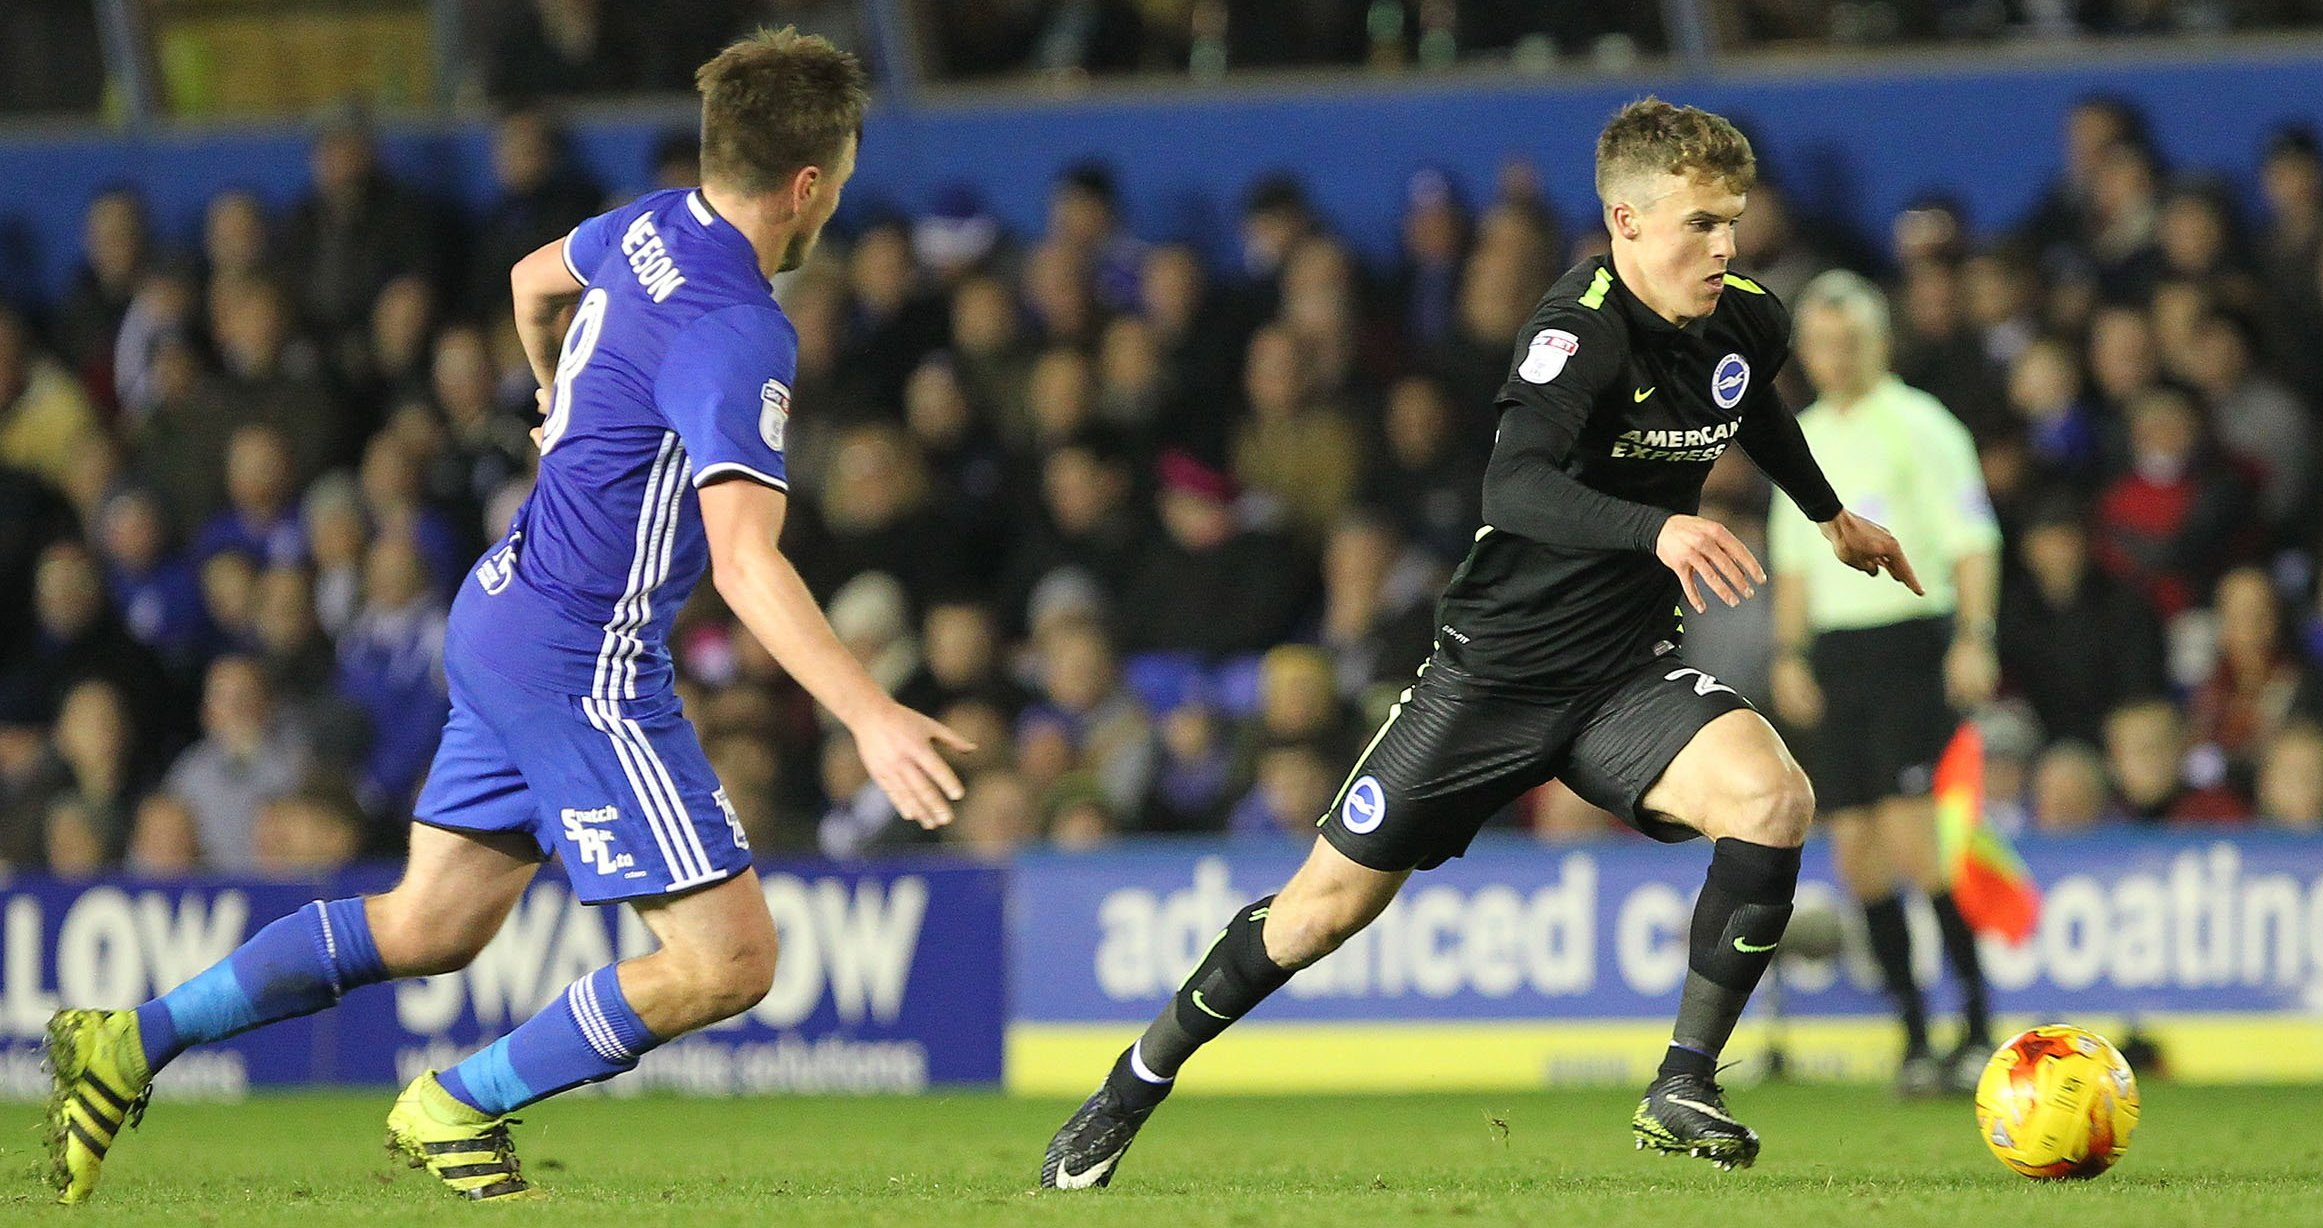 Solly March glides past defenders at Birmingham recently. Picture by Richard Parkes